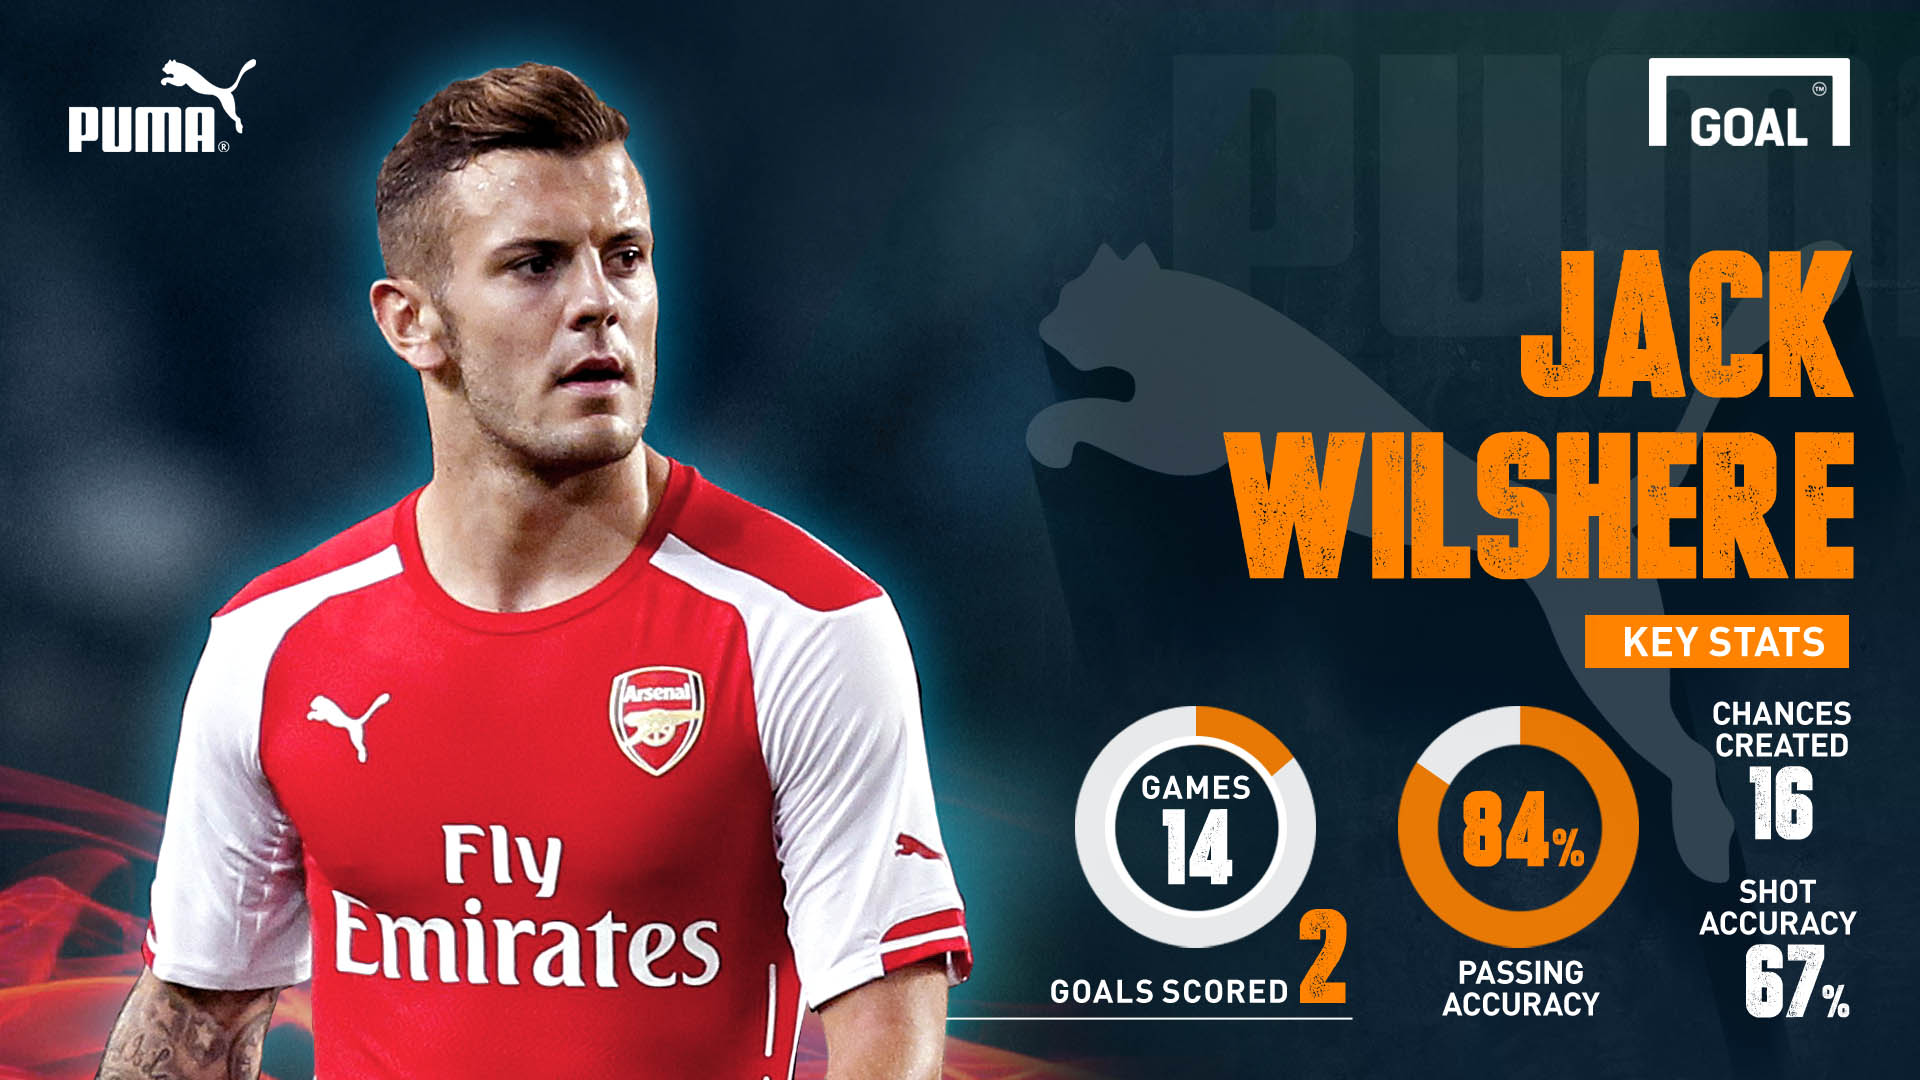 pumas arsenal players to watch jack wilshere goalcom